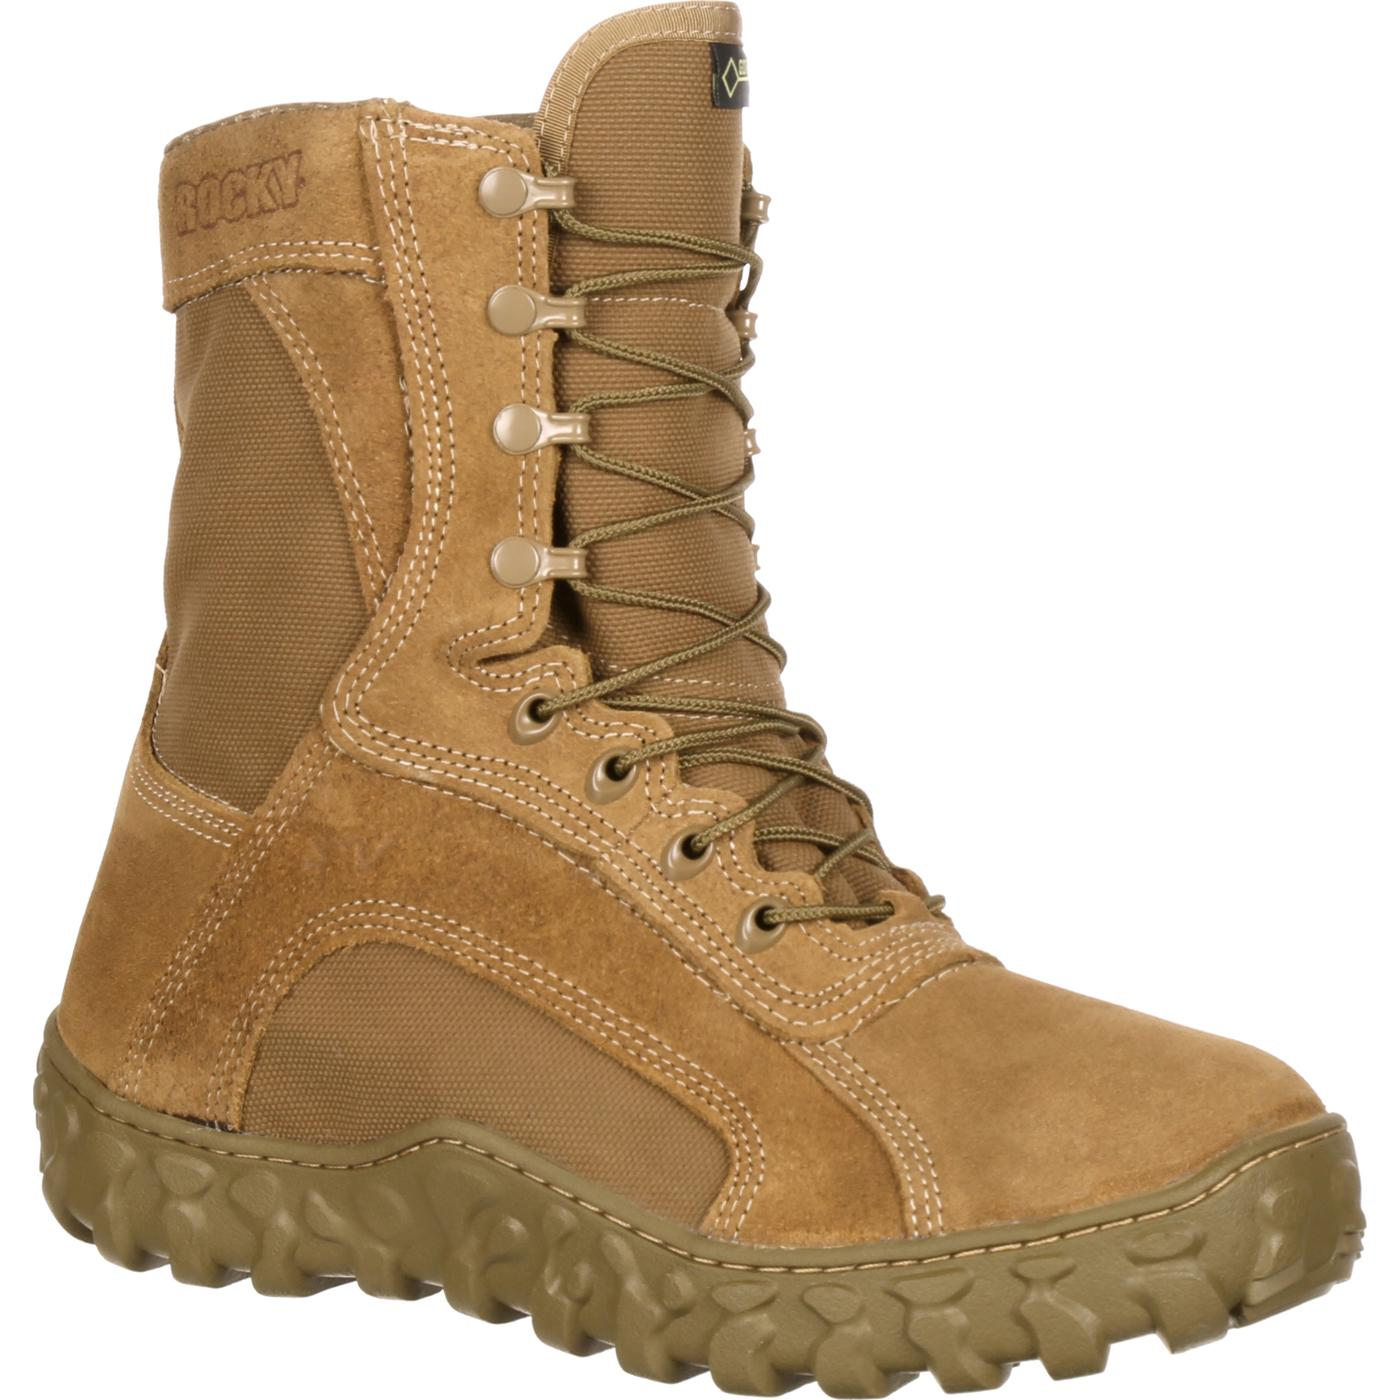 Rocky Combat Boots iKR0Aw3A